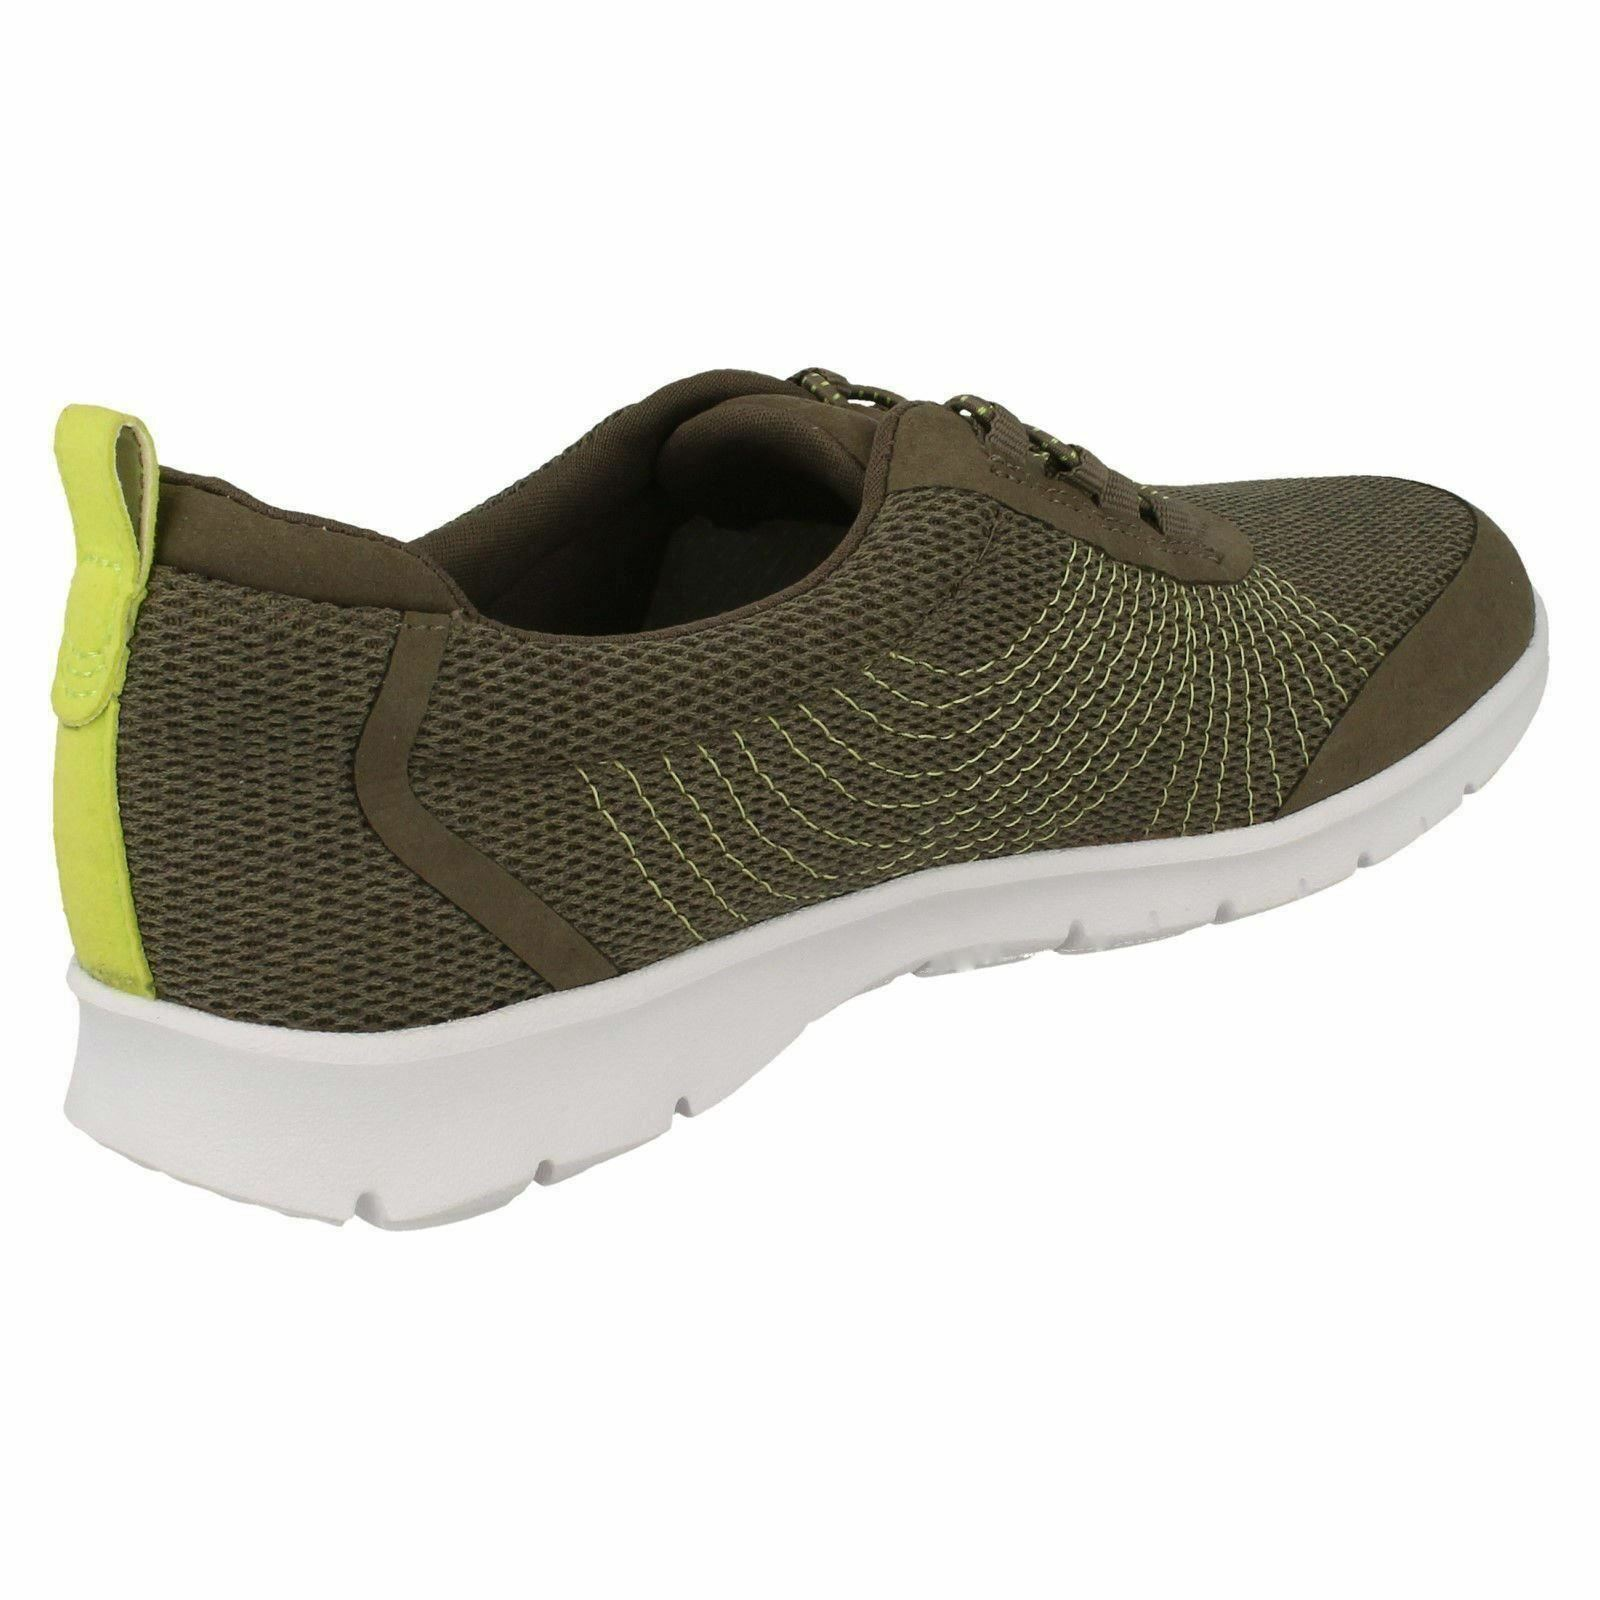 Donna CLARKS ALLENA NUVOLA Steppers Step ALLENA CLARKS BAIA SCARPE CASUAL SLIP-ON 3e198d